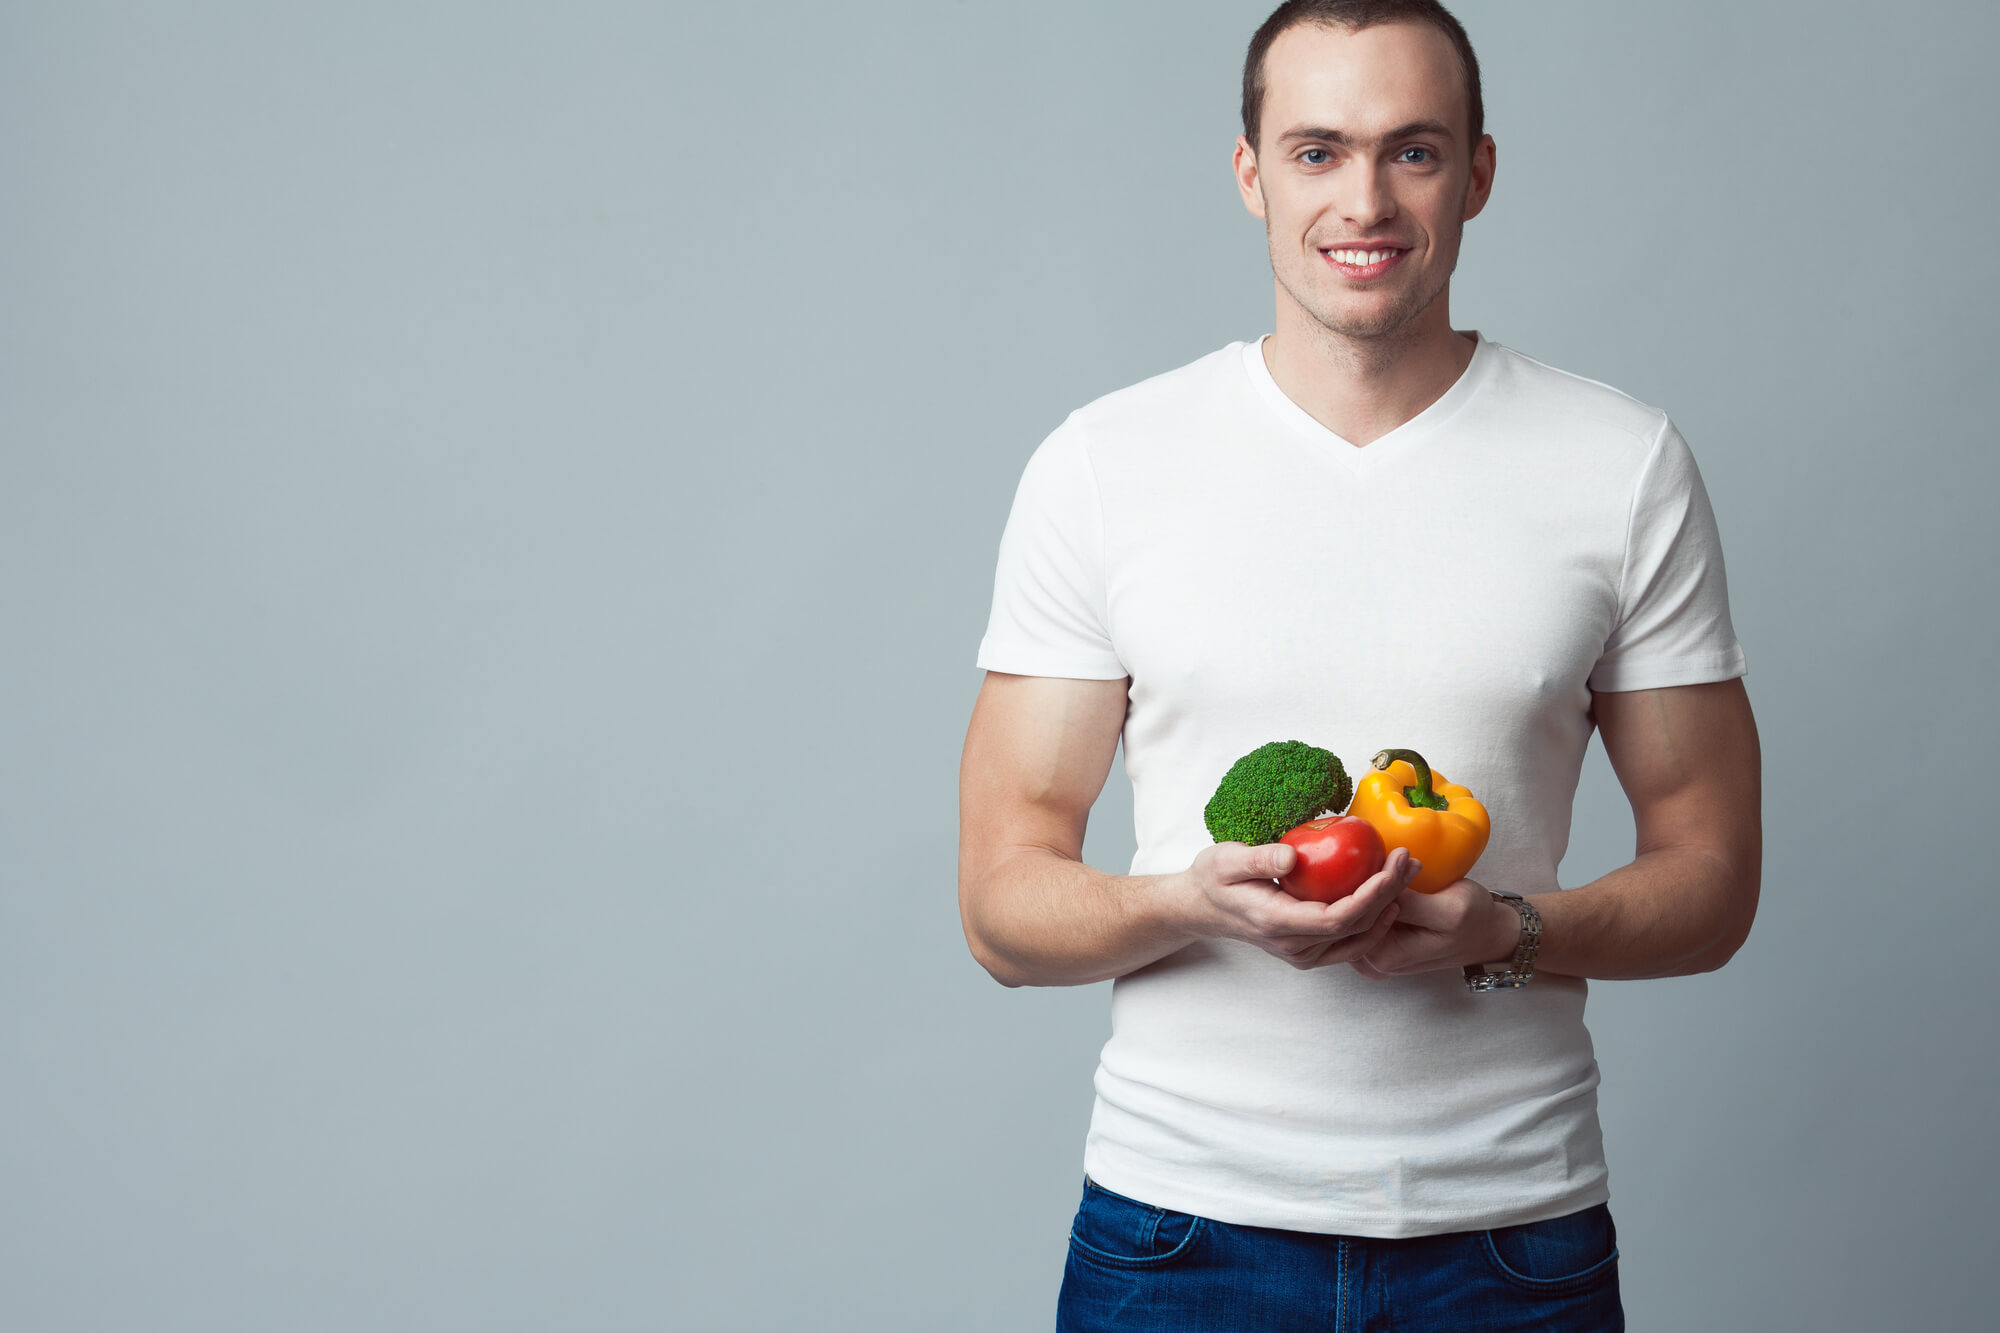 Young man in a white t-shirt holds fresh vegetables. Medical research shows that a low-fat diet can contribute to low testosterone under some circumstances.